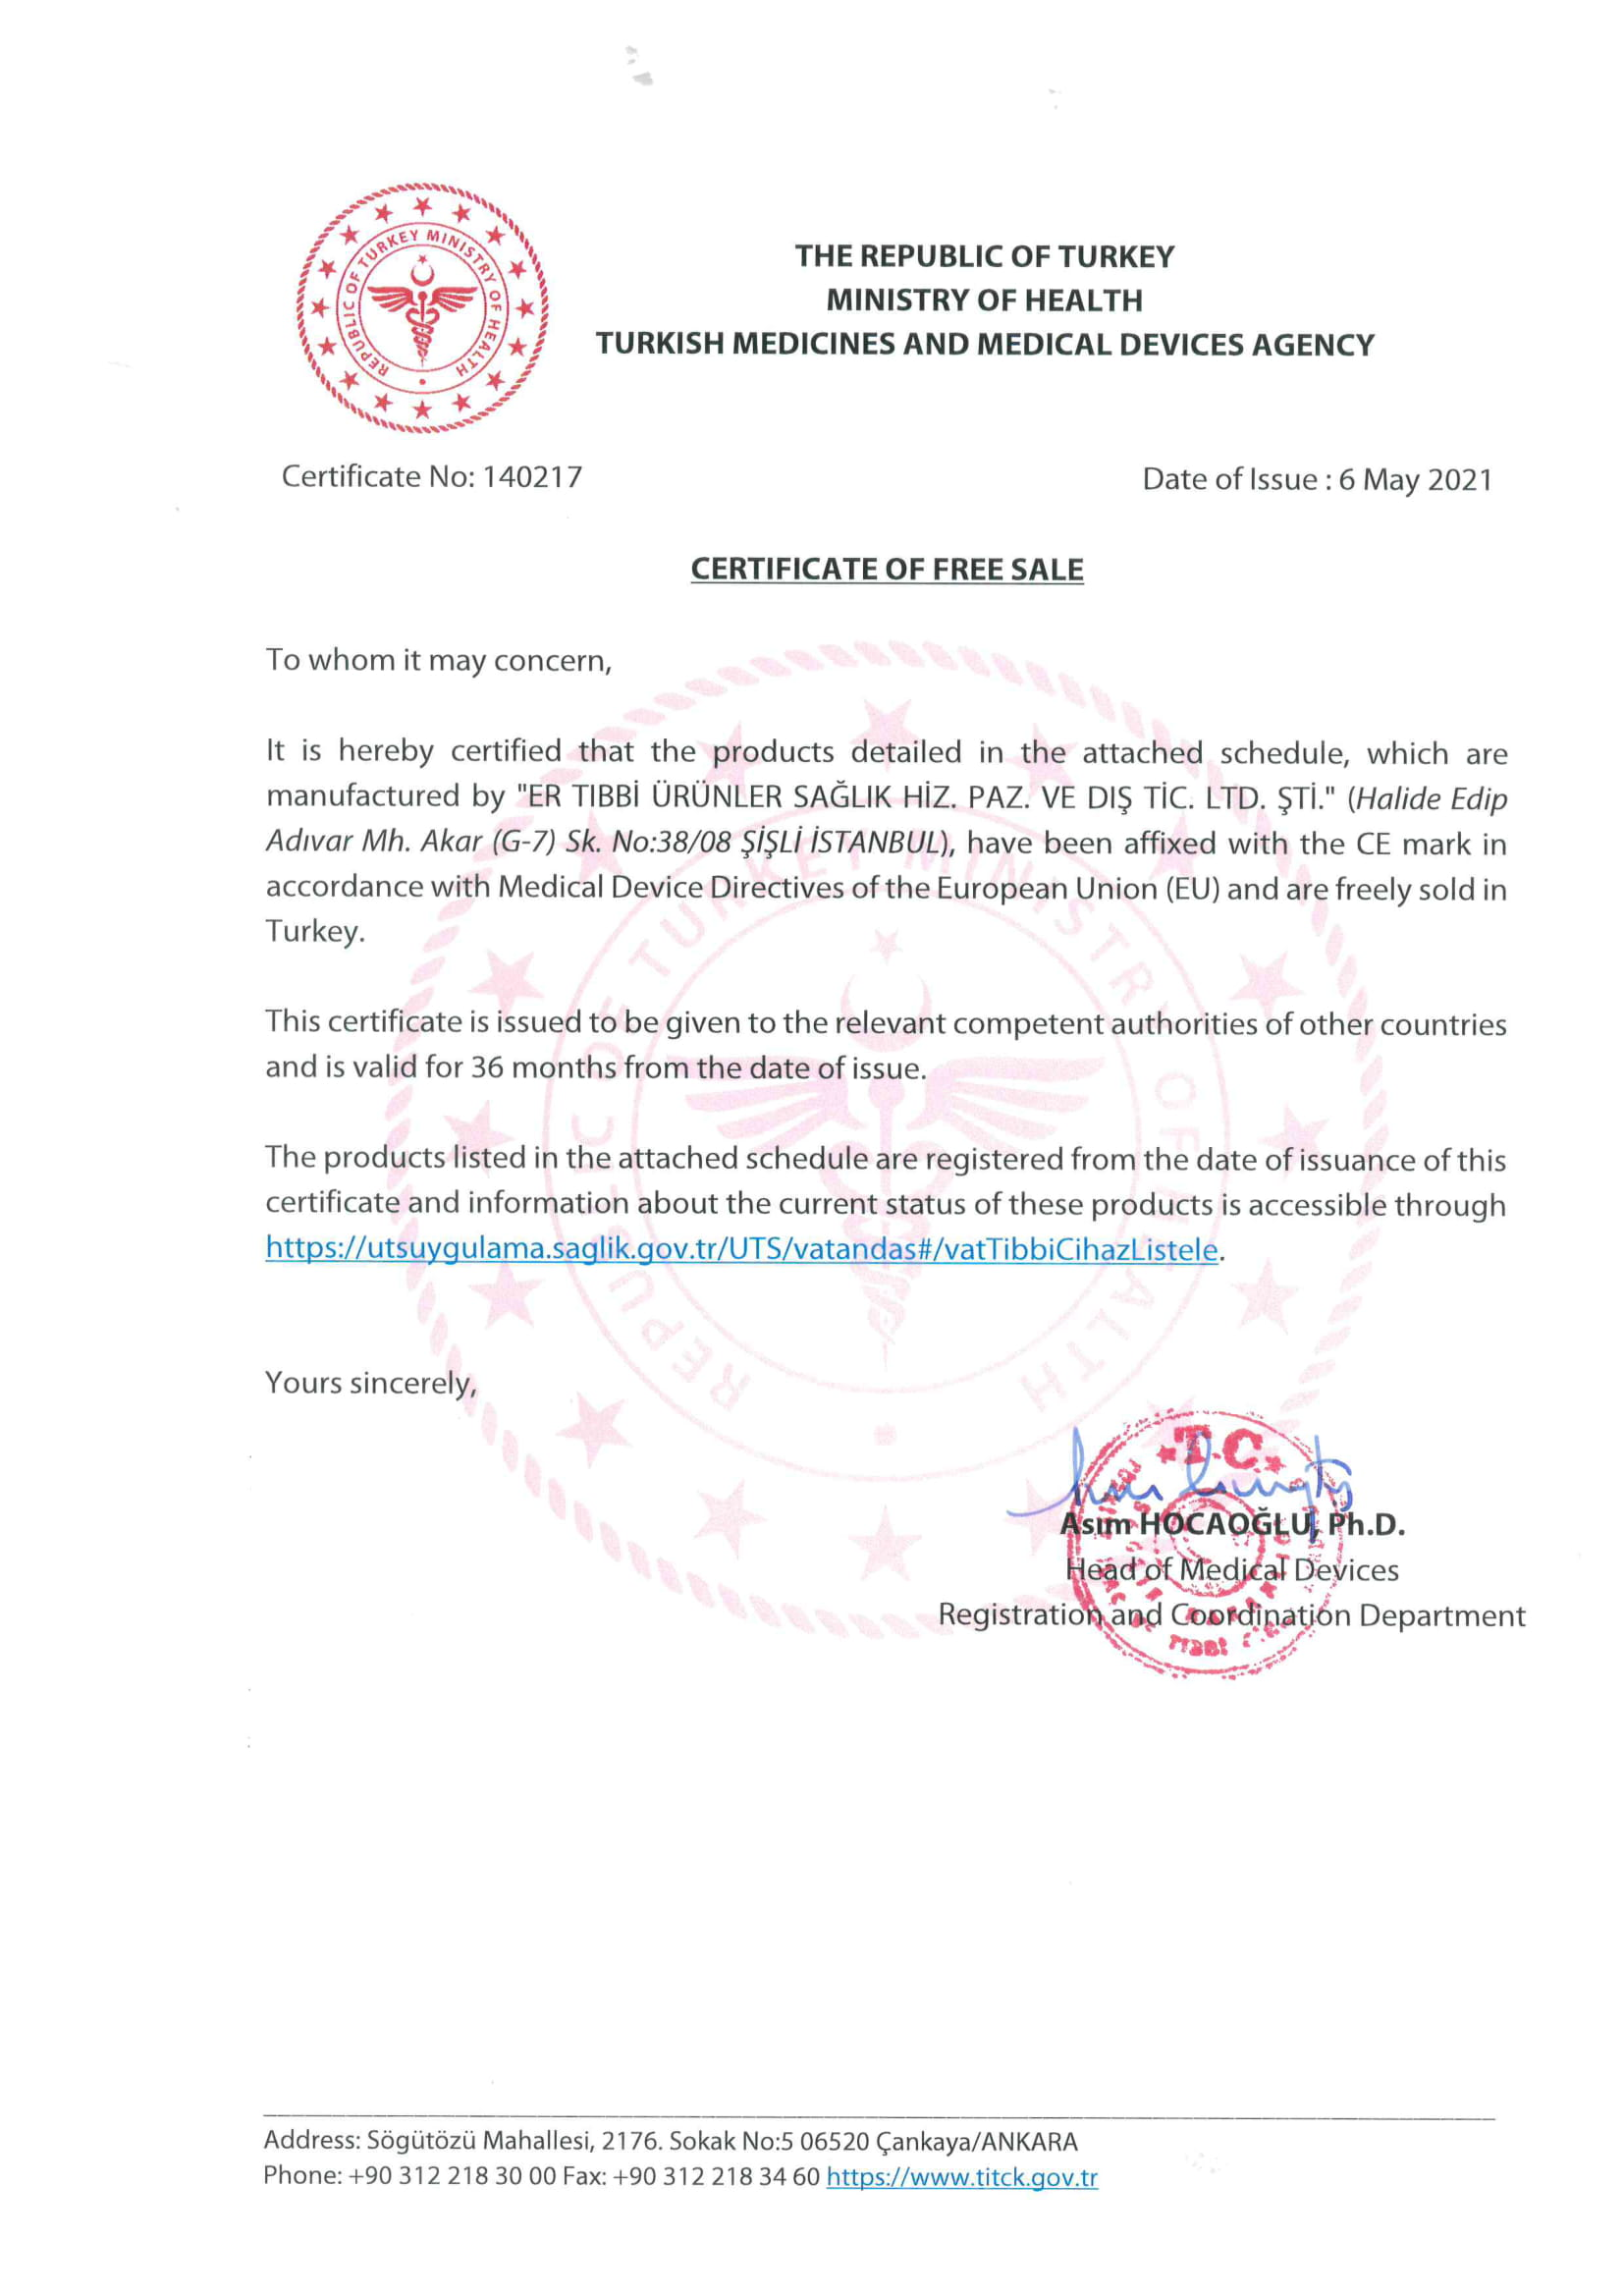 Certificate of Free Sale